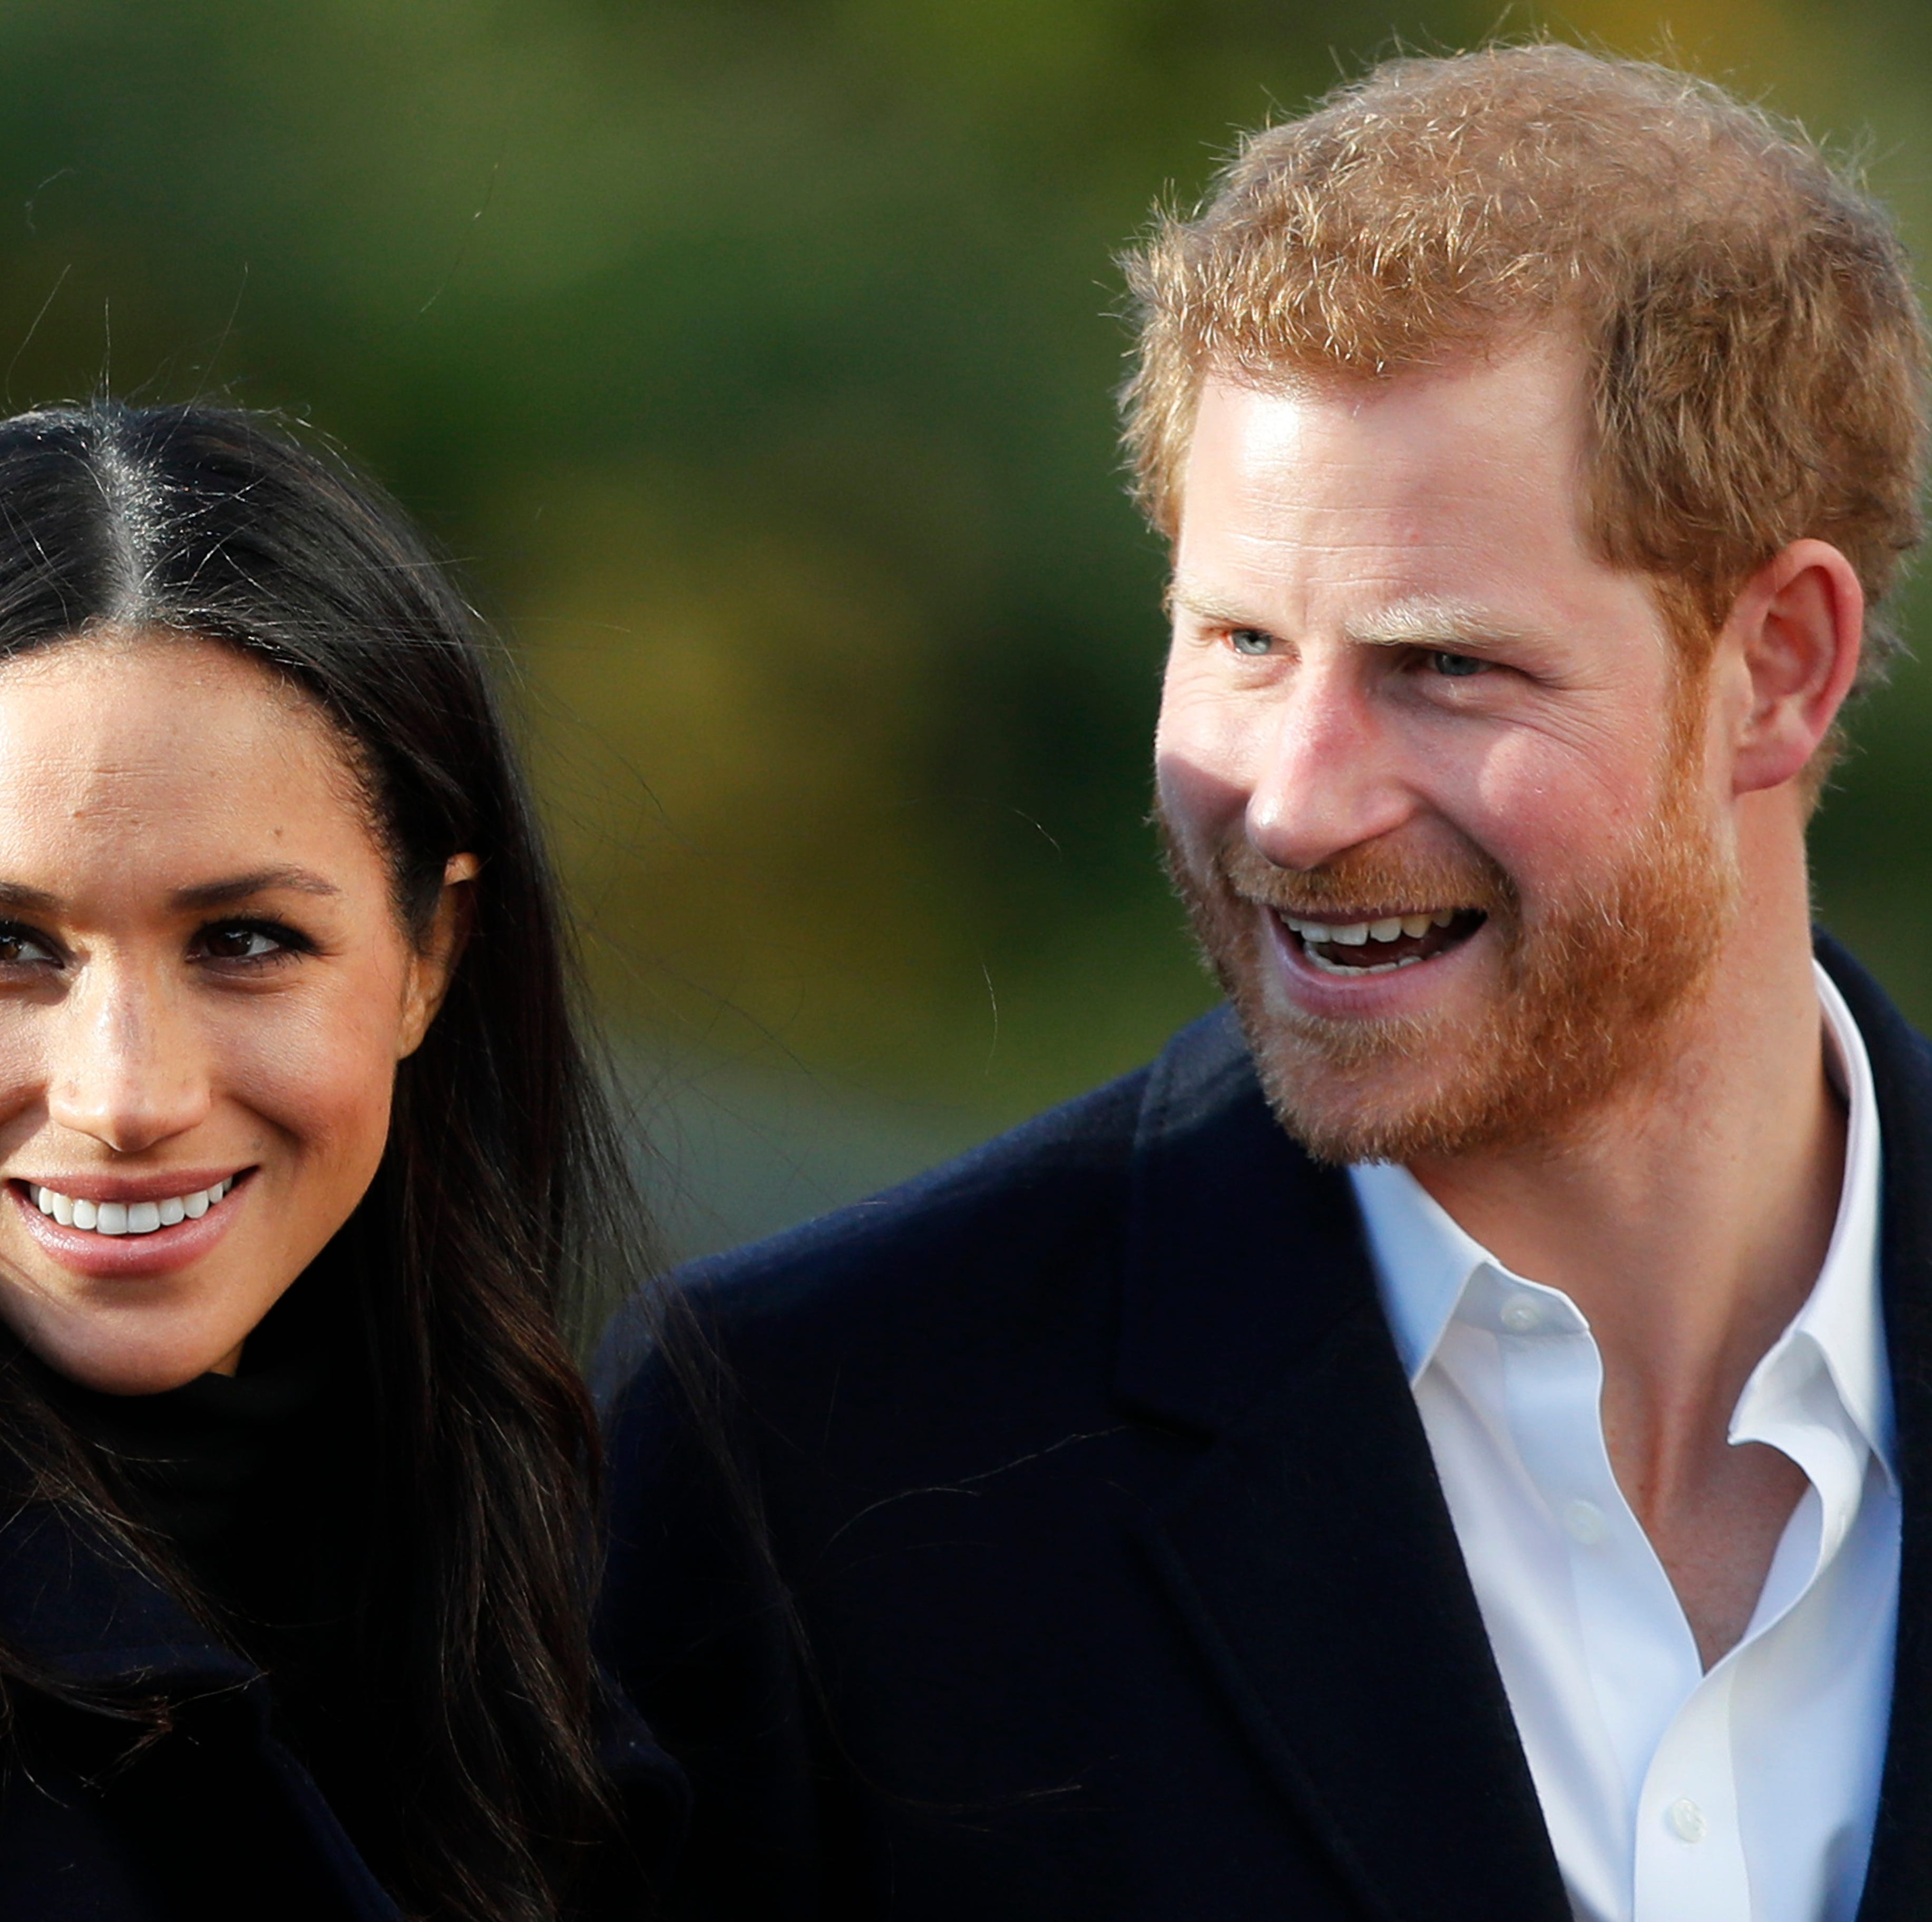 Royal baby is here: Prince Harry, Meghan have a boy, seventh in line for British throne